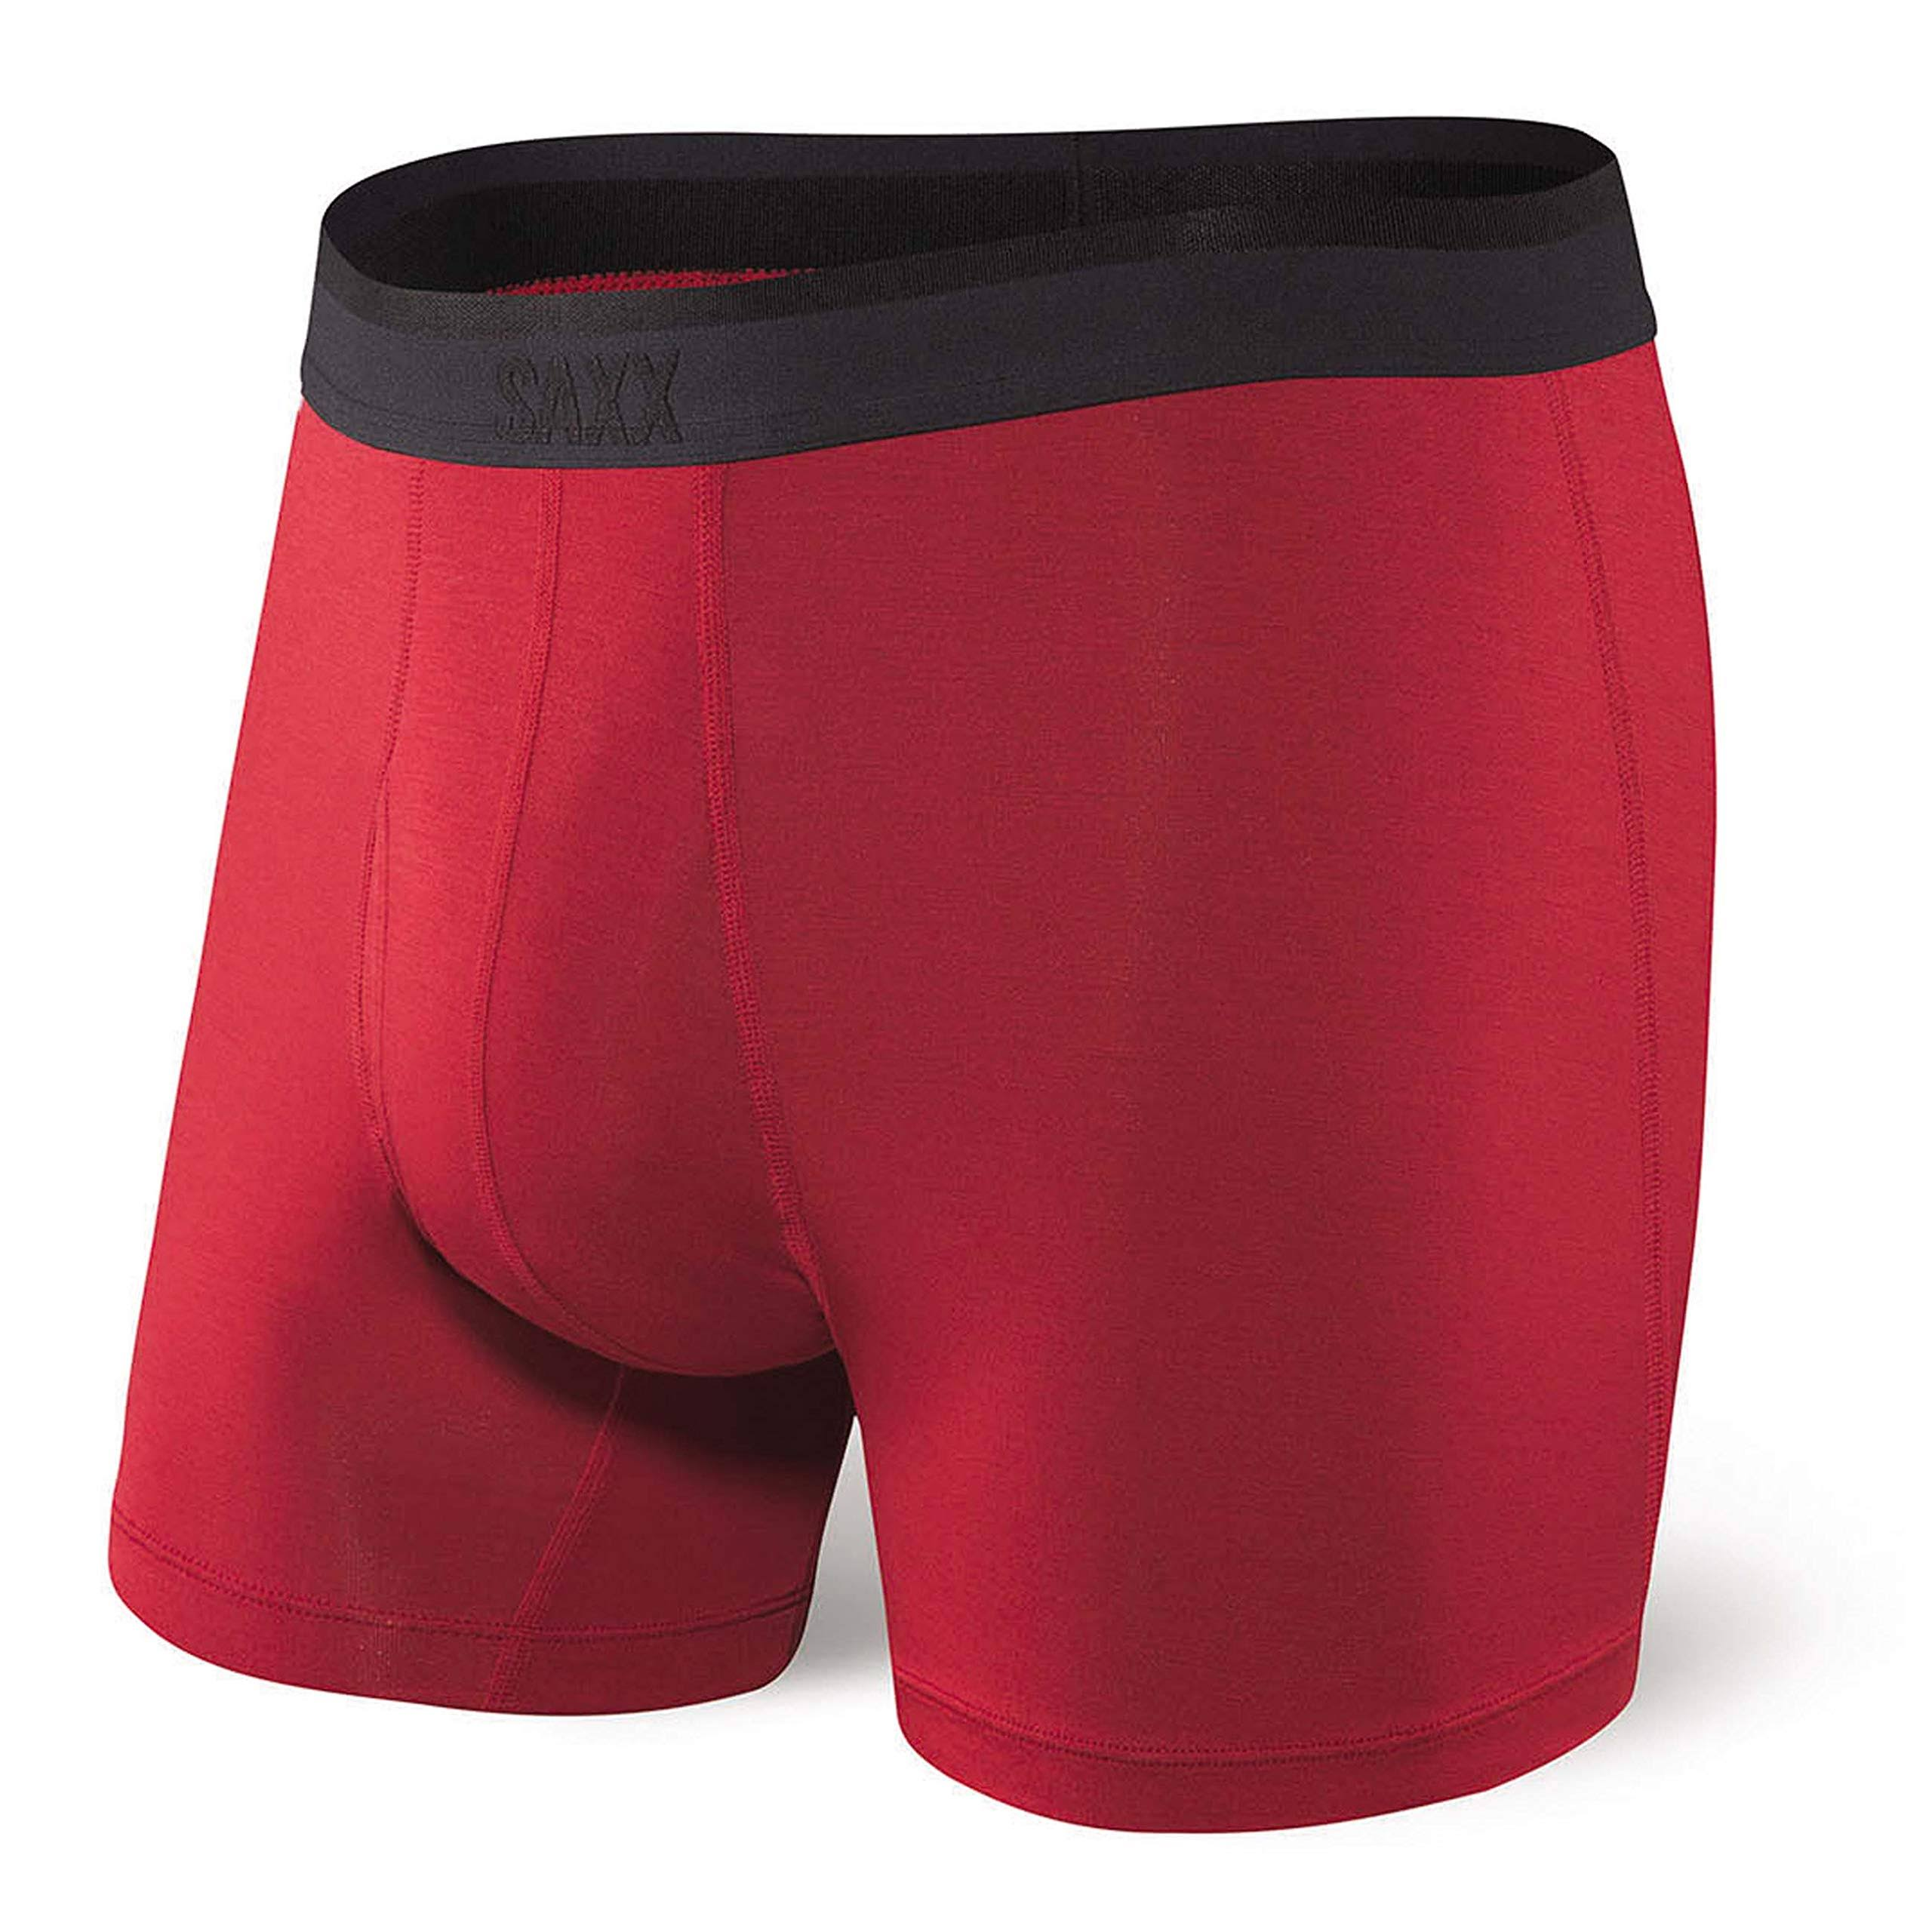 Saxx Platinum Boxer Brief - Men's Red, L